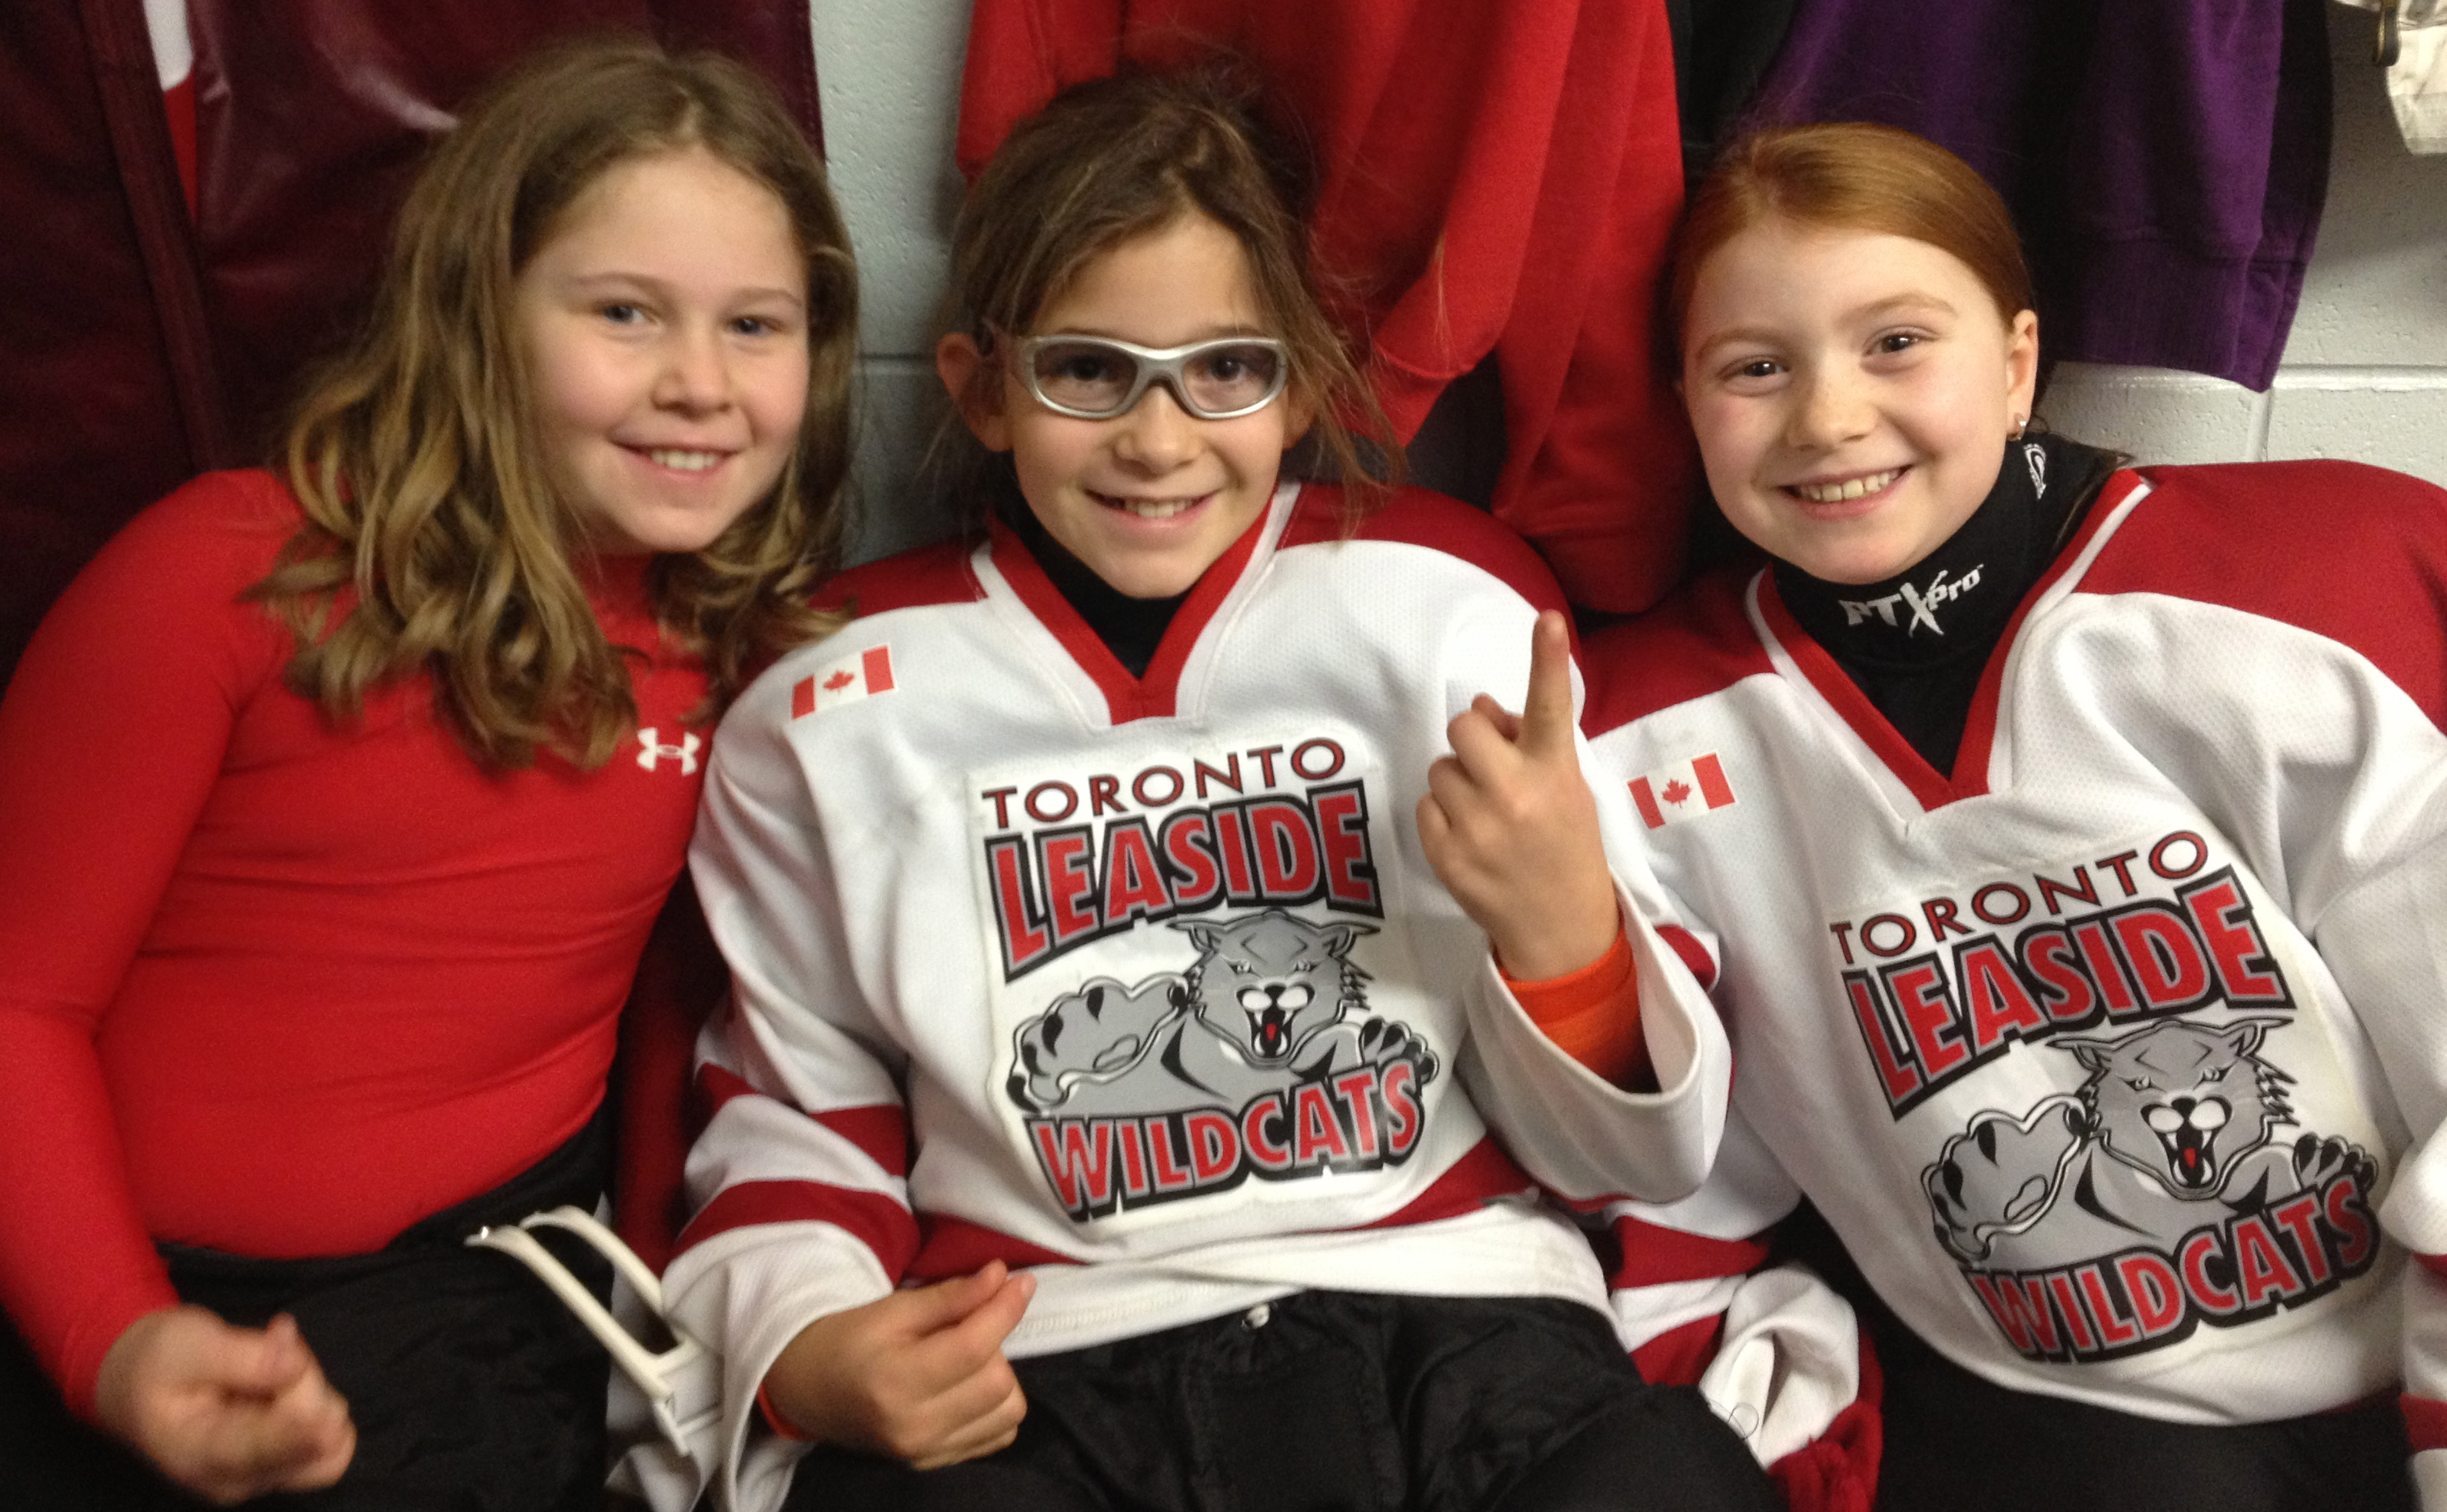 My Bespectacled Athlete – Can Tweens Wear Contacts?